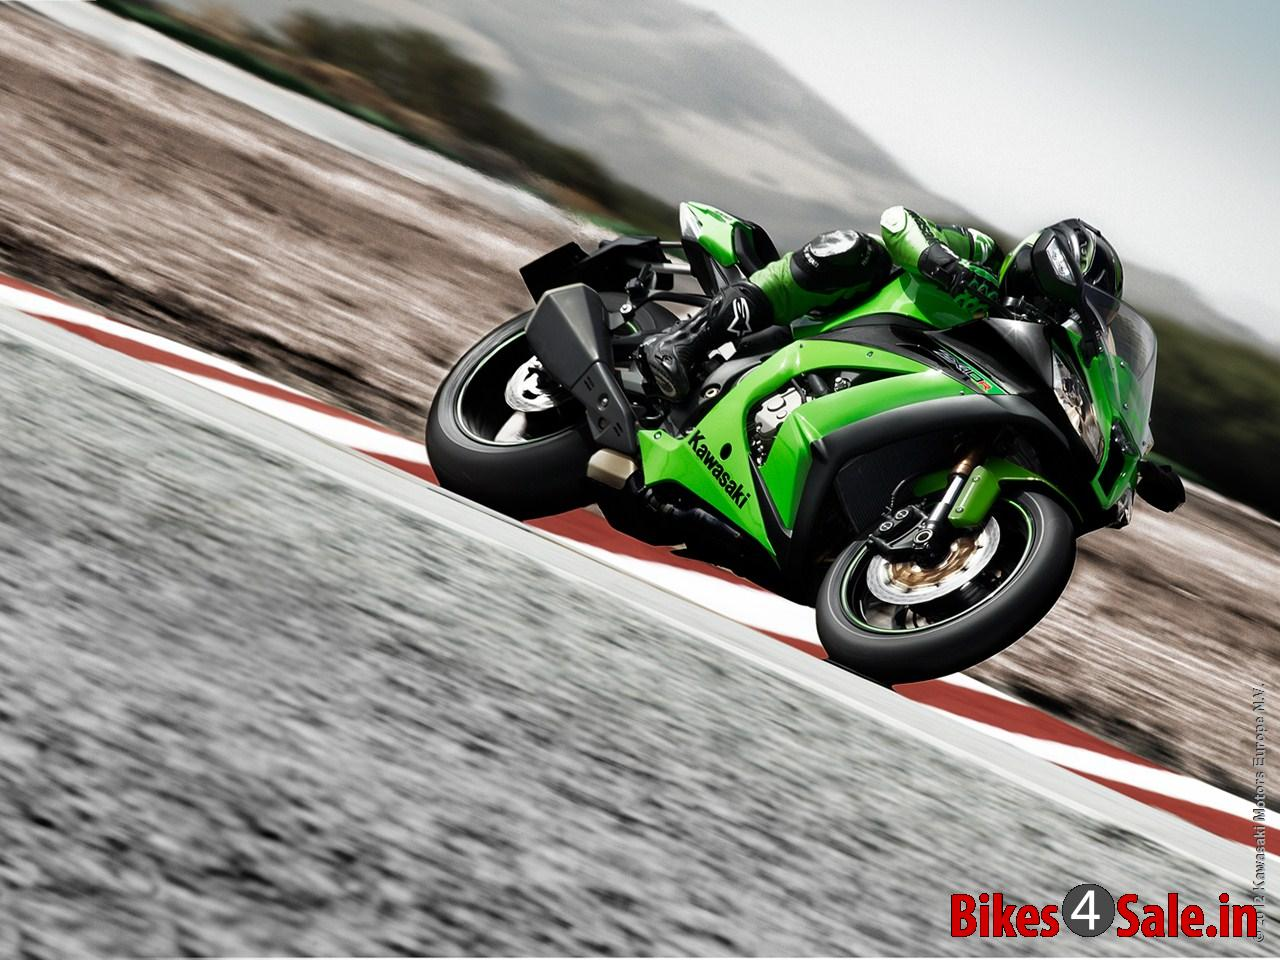 How Do You Drive A Kawasaki Ninja